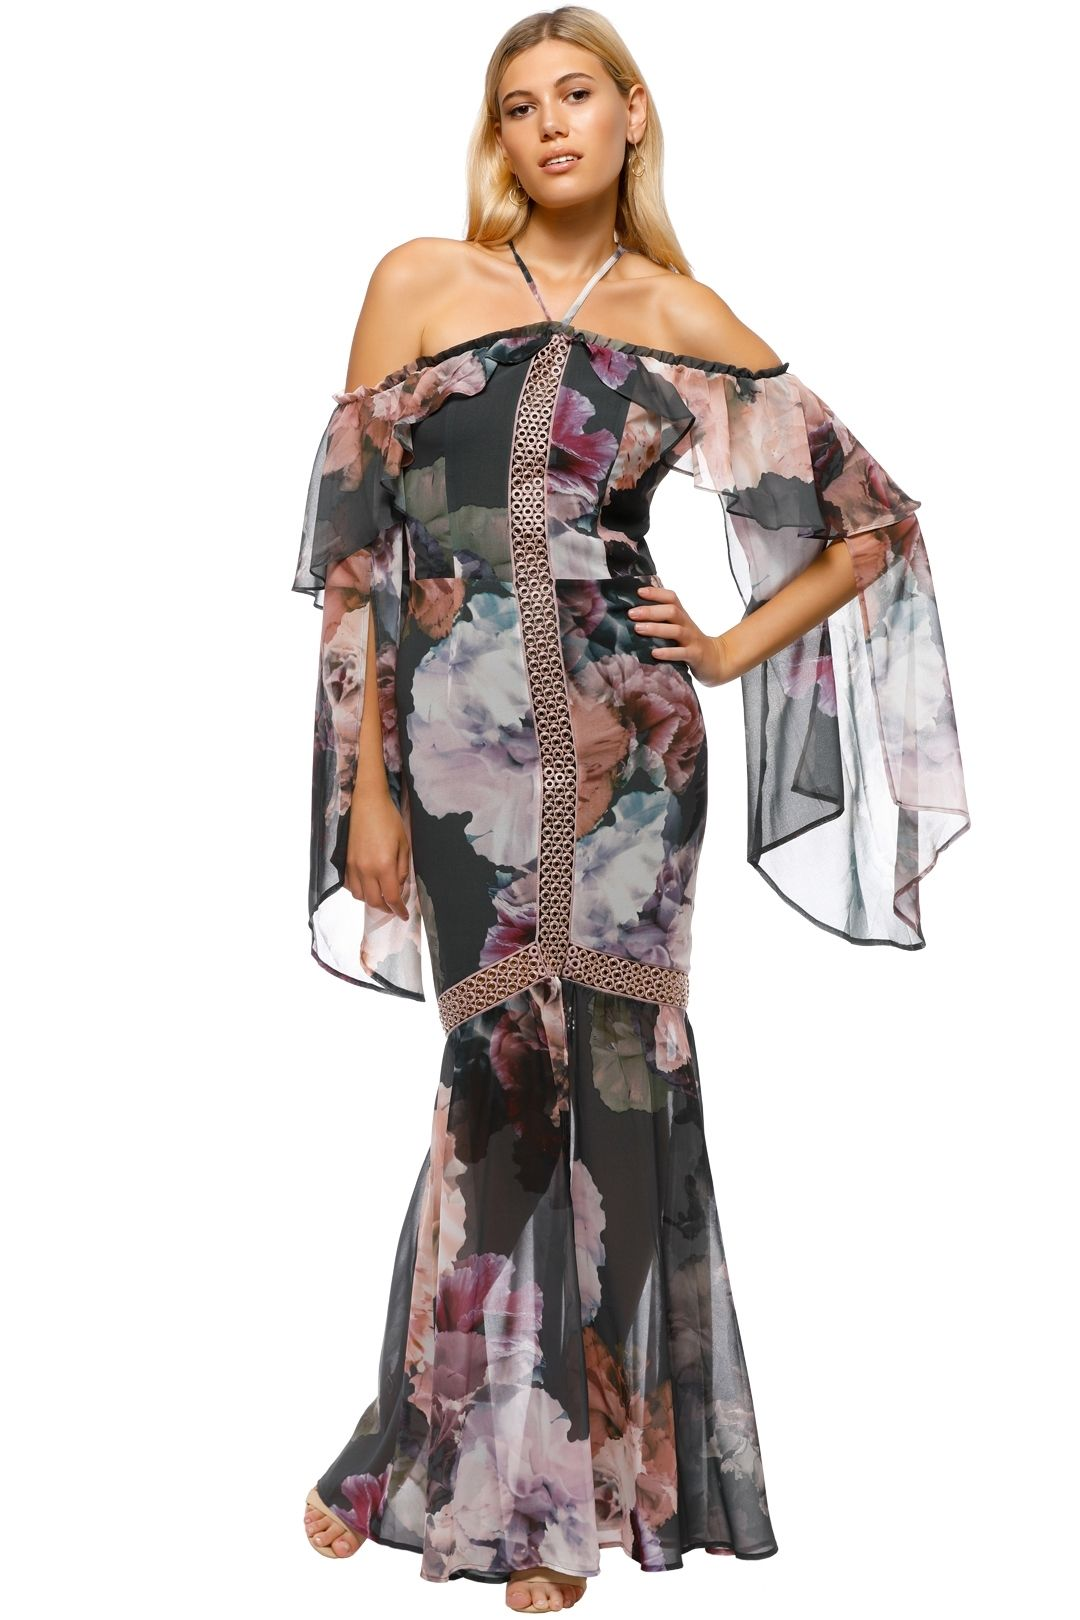 We Are Kindred - Valentina Split Maxi Dress - Gray Pink Floral - Front